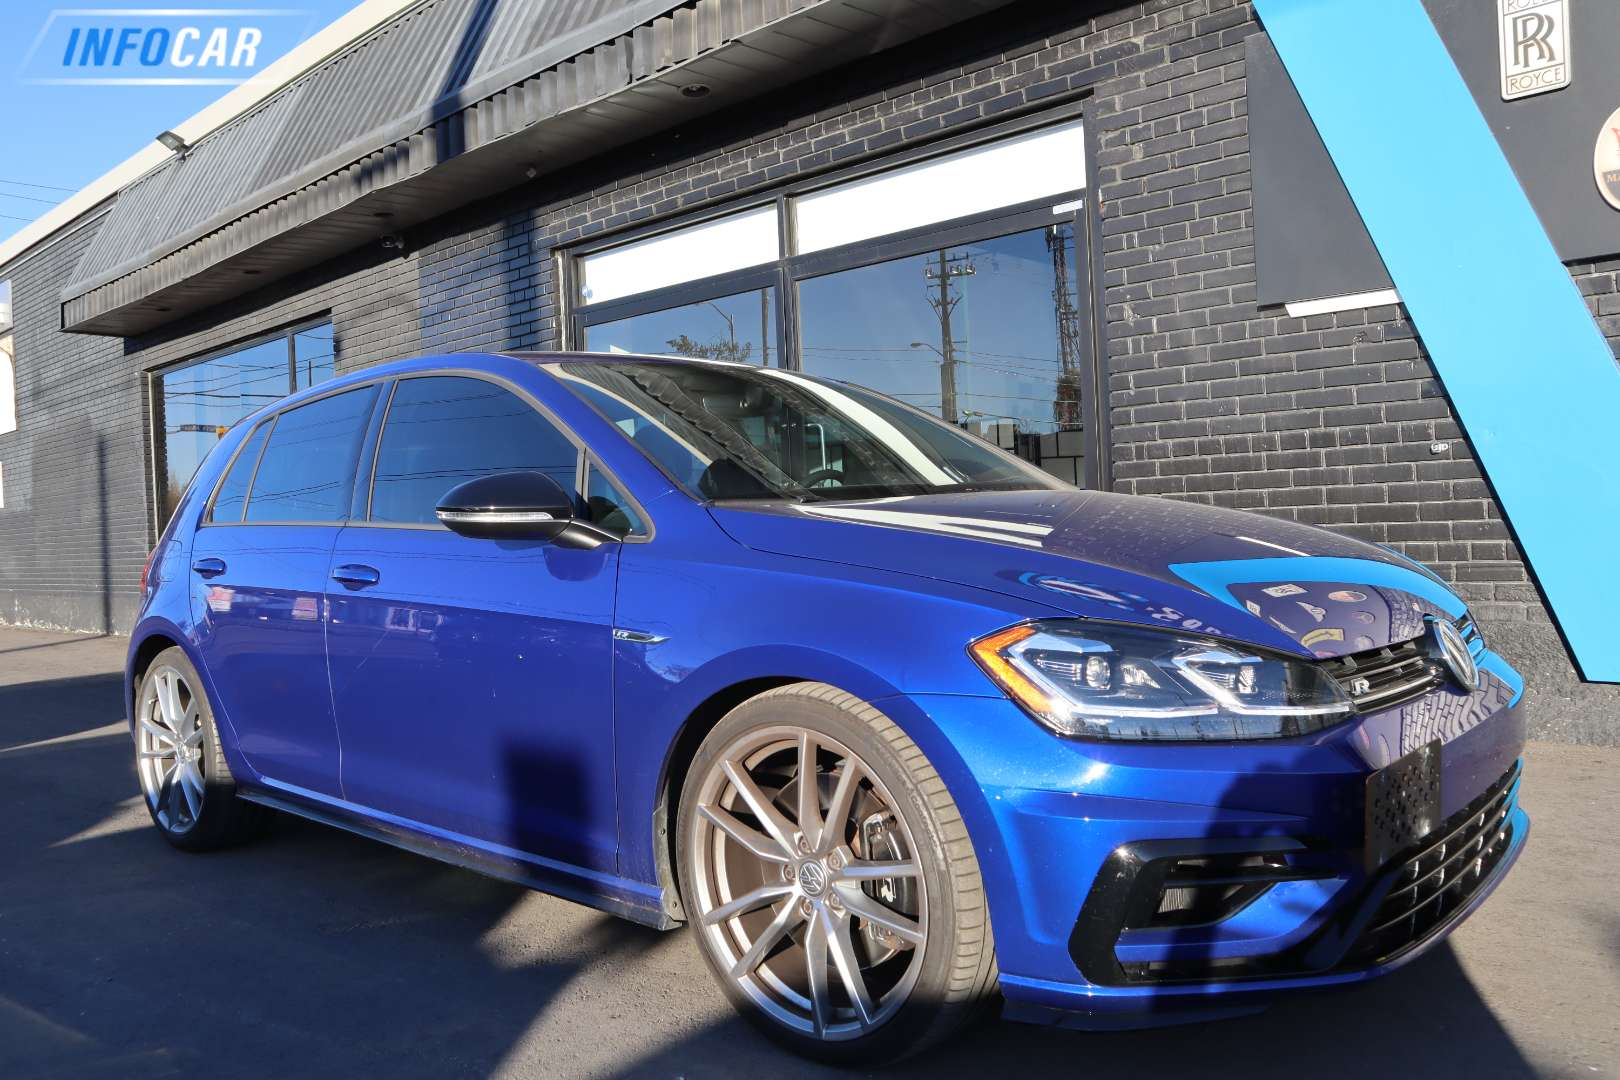 2018 Volkswagen Golf R  - INFOCAR - Toronto's Most Comprehensive New and Used Auto Trading Platform